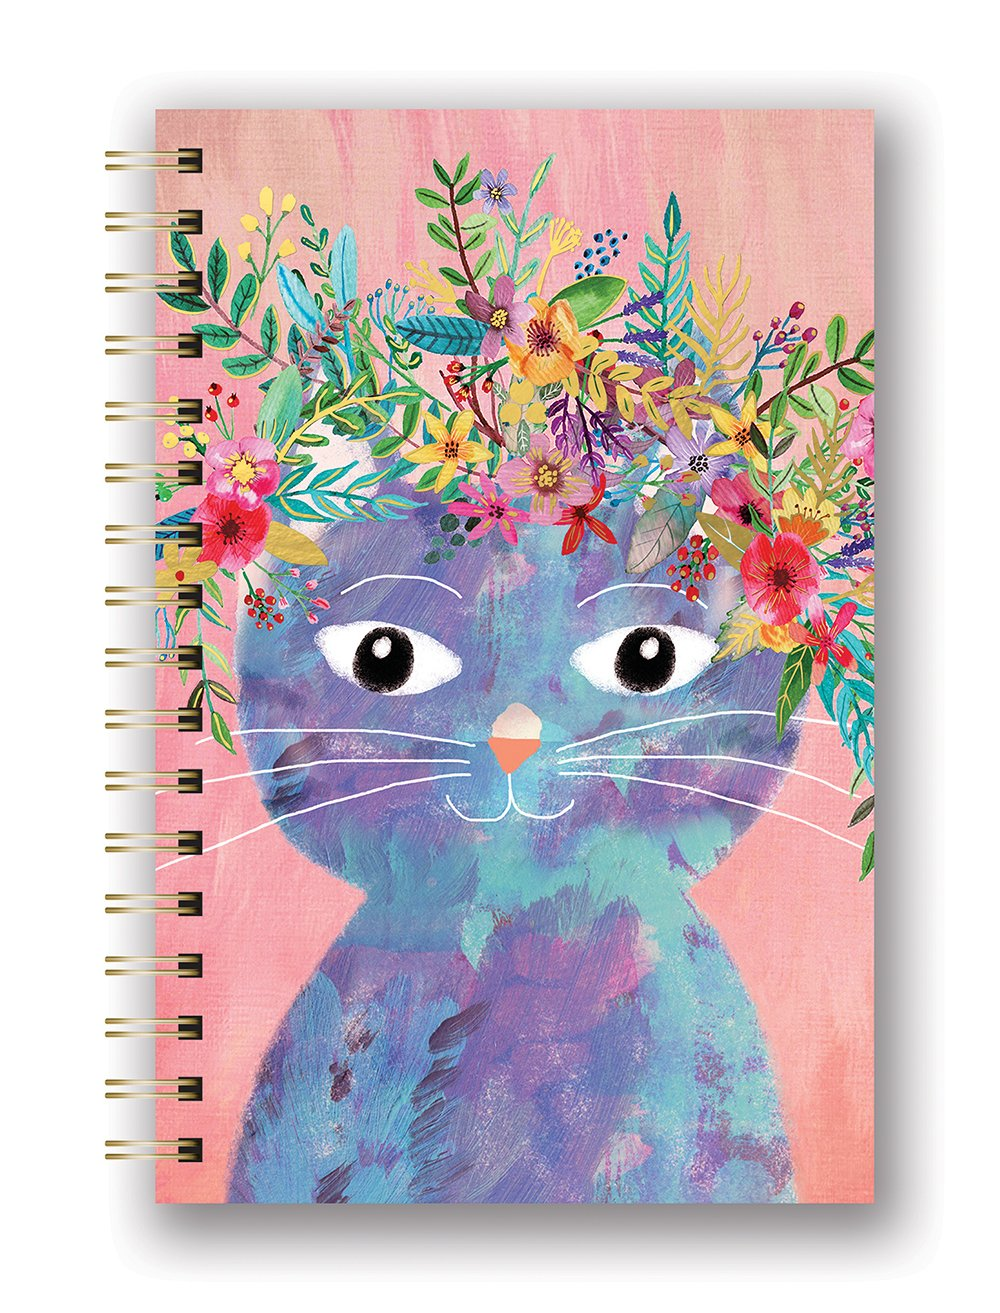 Studio Oh! Hardcover Spiral Notebook Available in 9 Different Designs, Mia Charro Fancy Cat